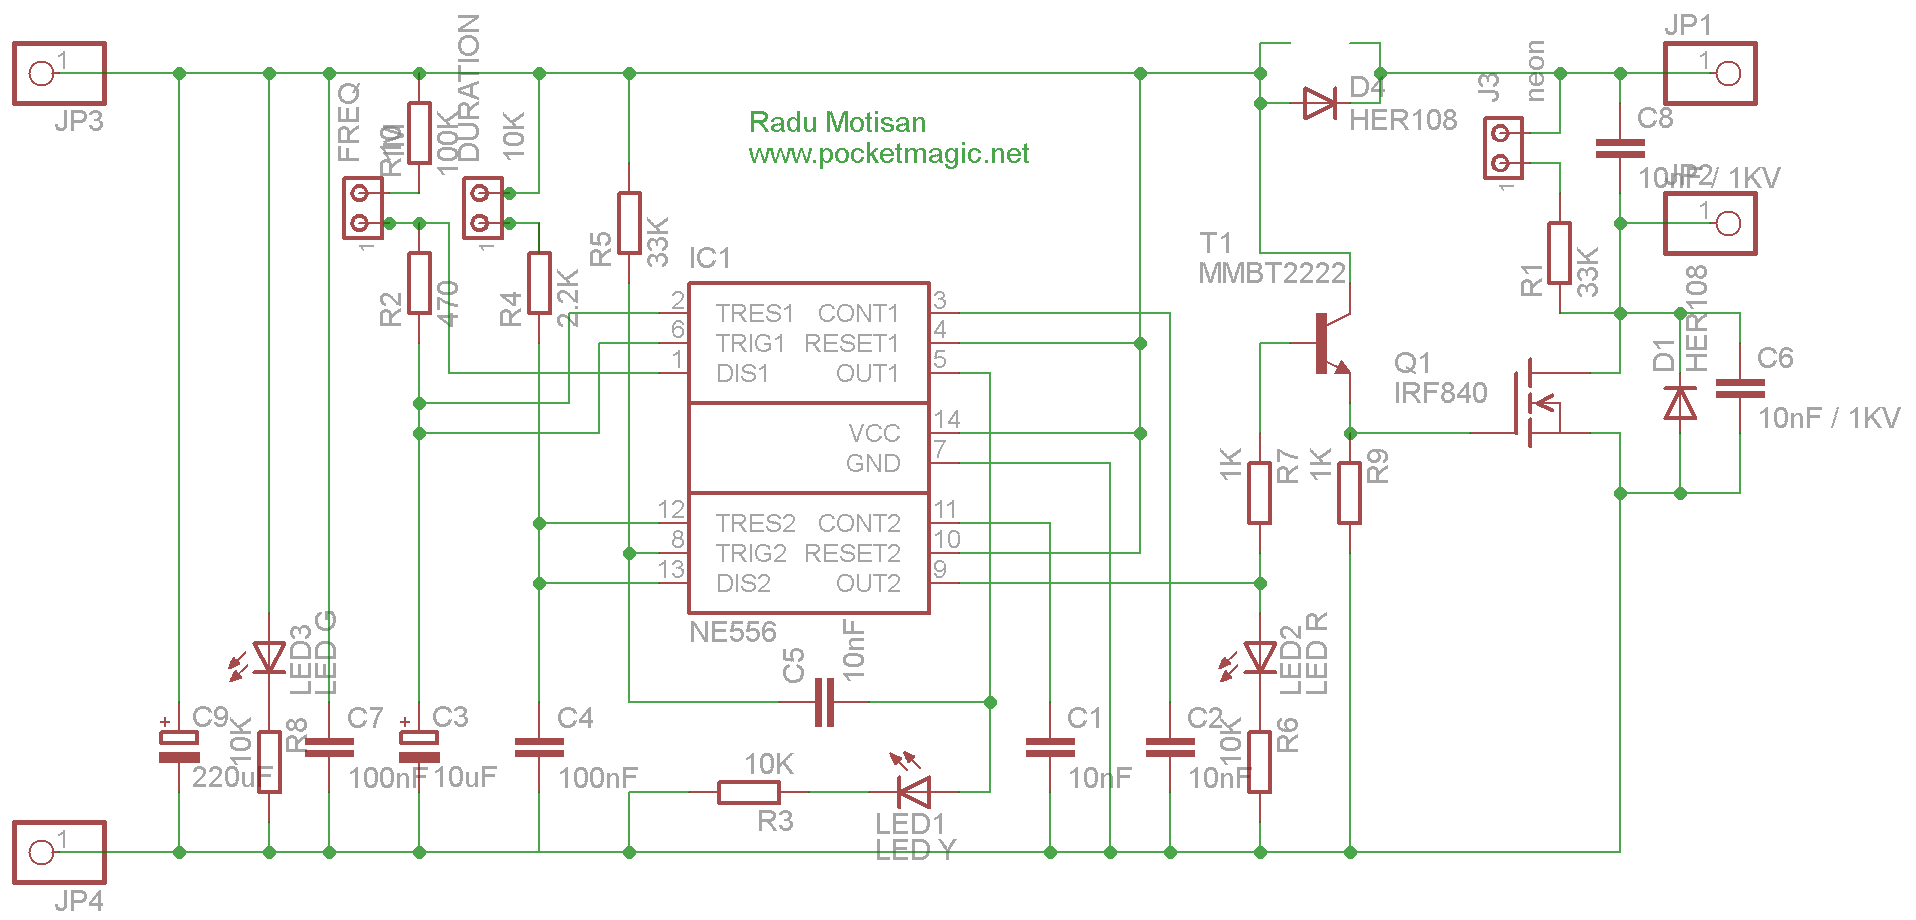 electric fence circuit for perimeter protection pocketmagic rh pocketmagic net electric fence circuit diagram 555 electric fence circuit diagram 555